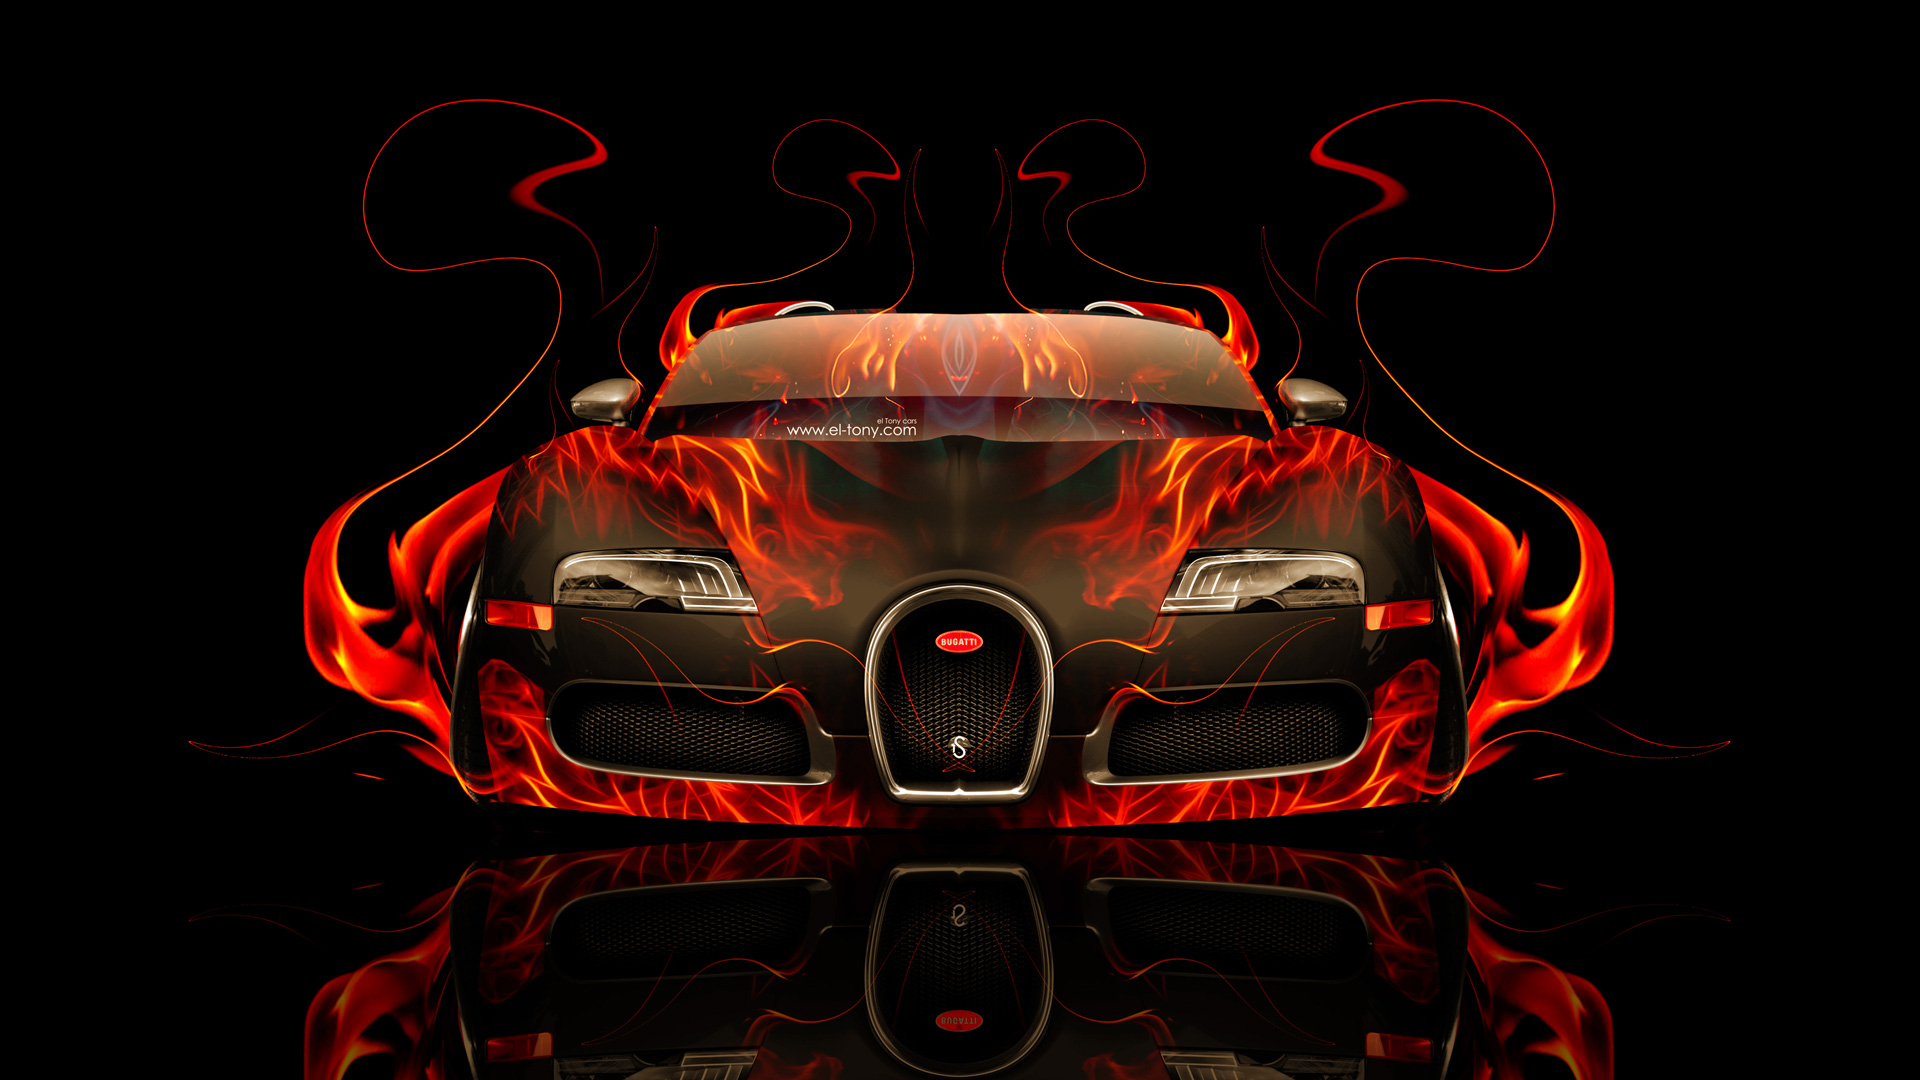 Merveilleux Bugatti Veyron Front Fire Abstract Car 2014 HD